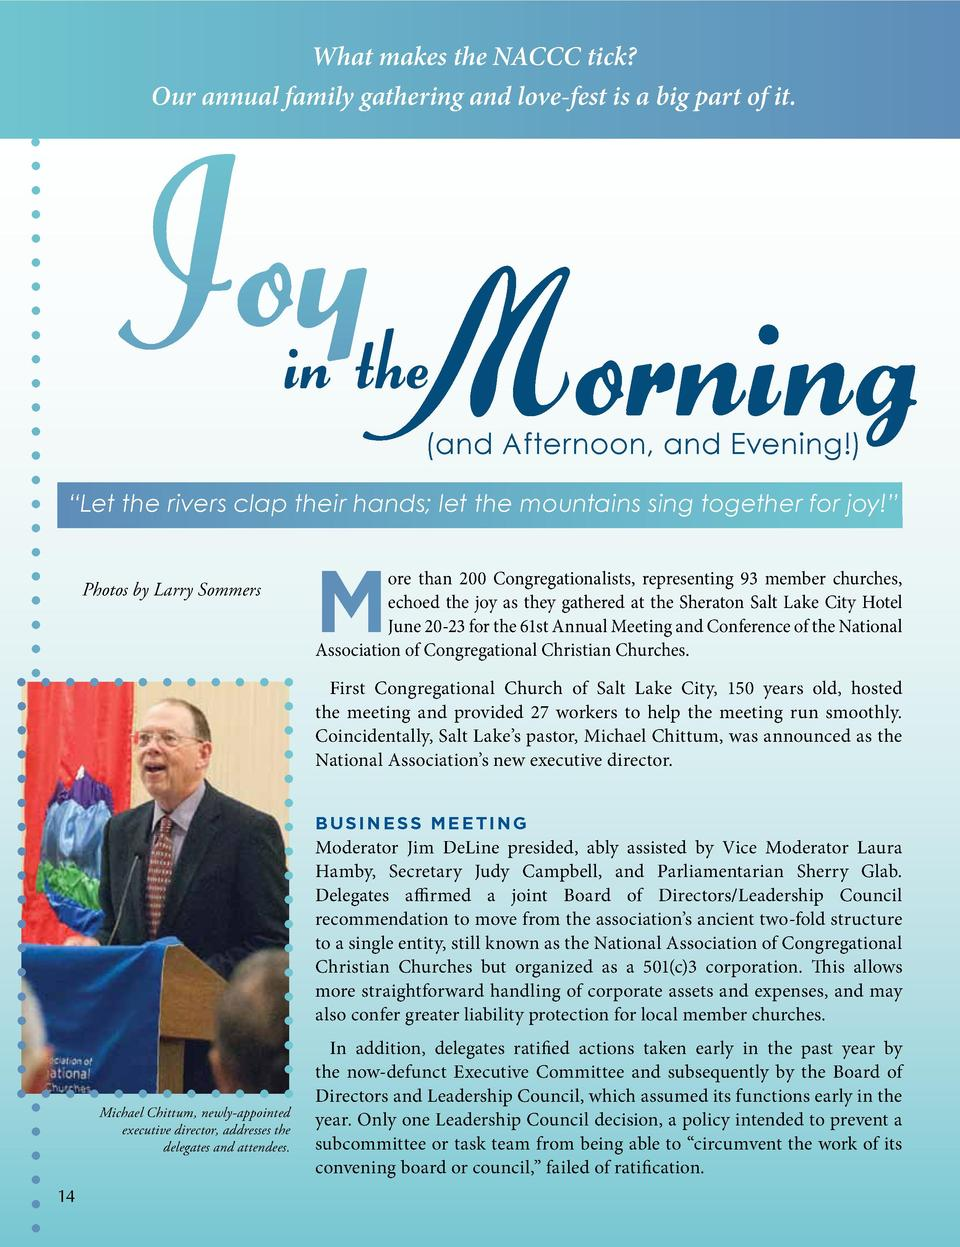 What makes the NACCC tick  Our annual family gathering and love-fest is a big part of it.  Joy Morning in the   and Aftern...